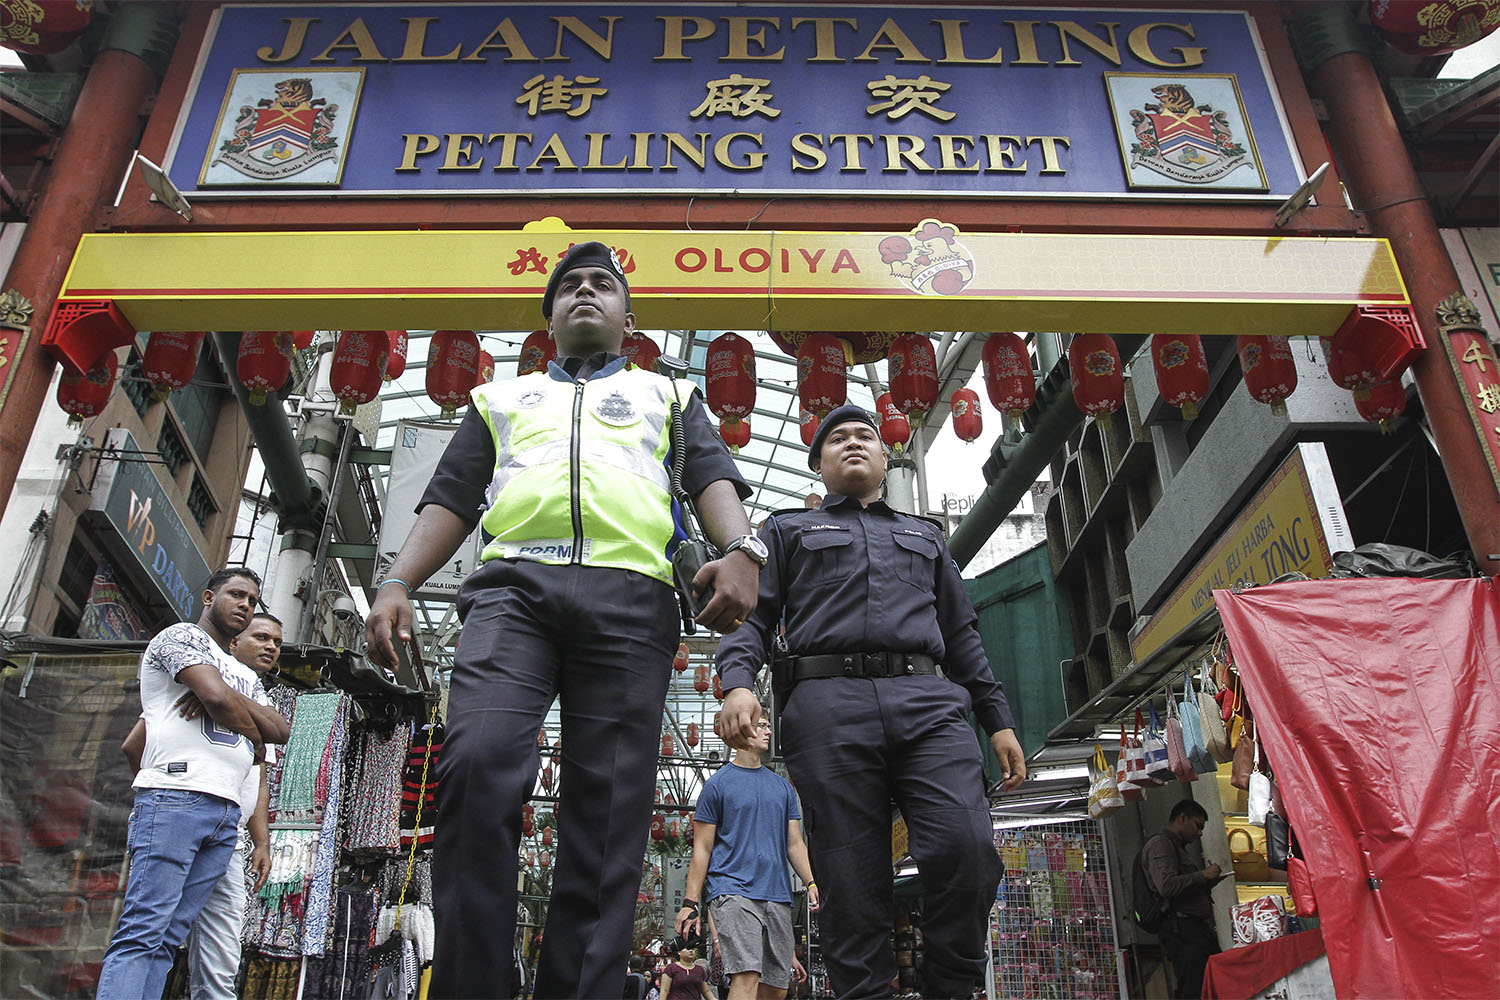 The #Merah169 rally to defend Malay honour on September 16 turned briefly chaotic when police fired water cannons on protesters trying to force their way into Petaling Street. ― File pic